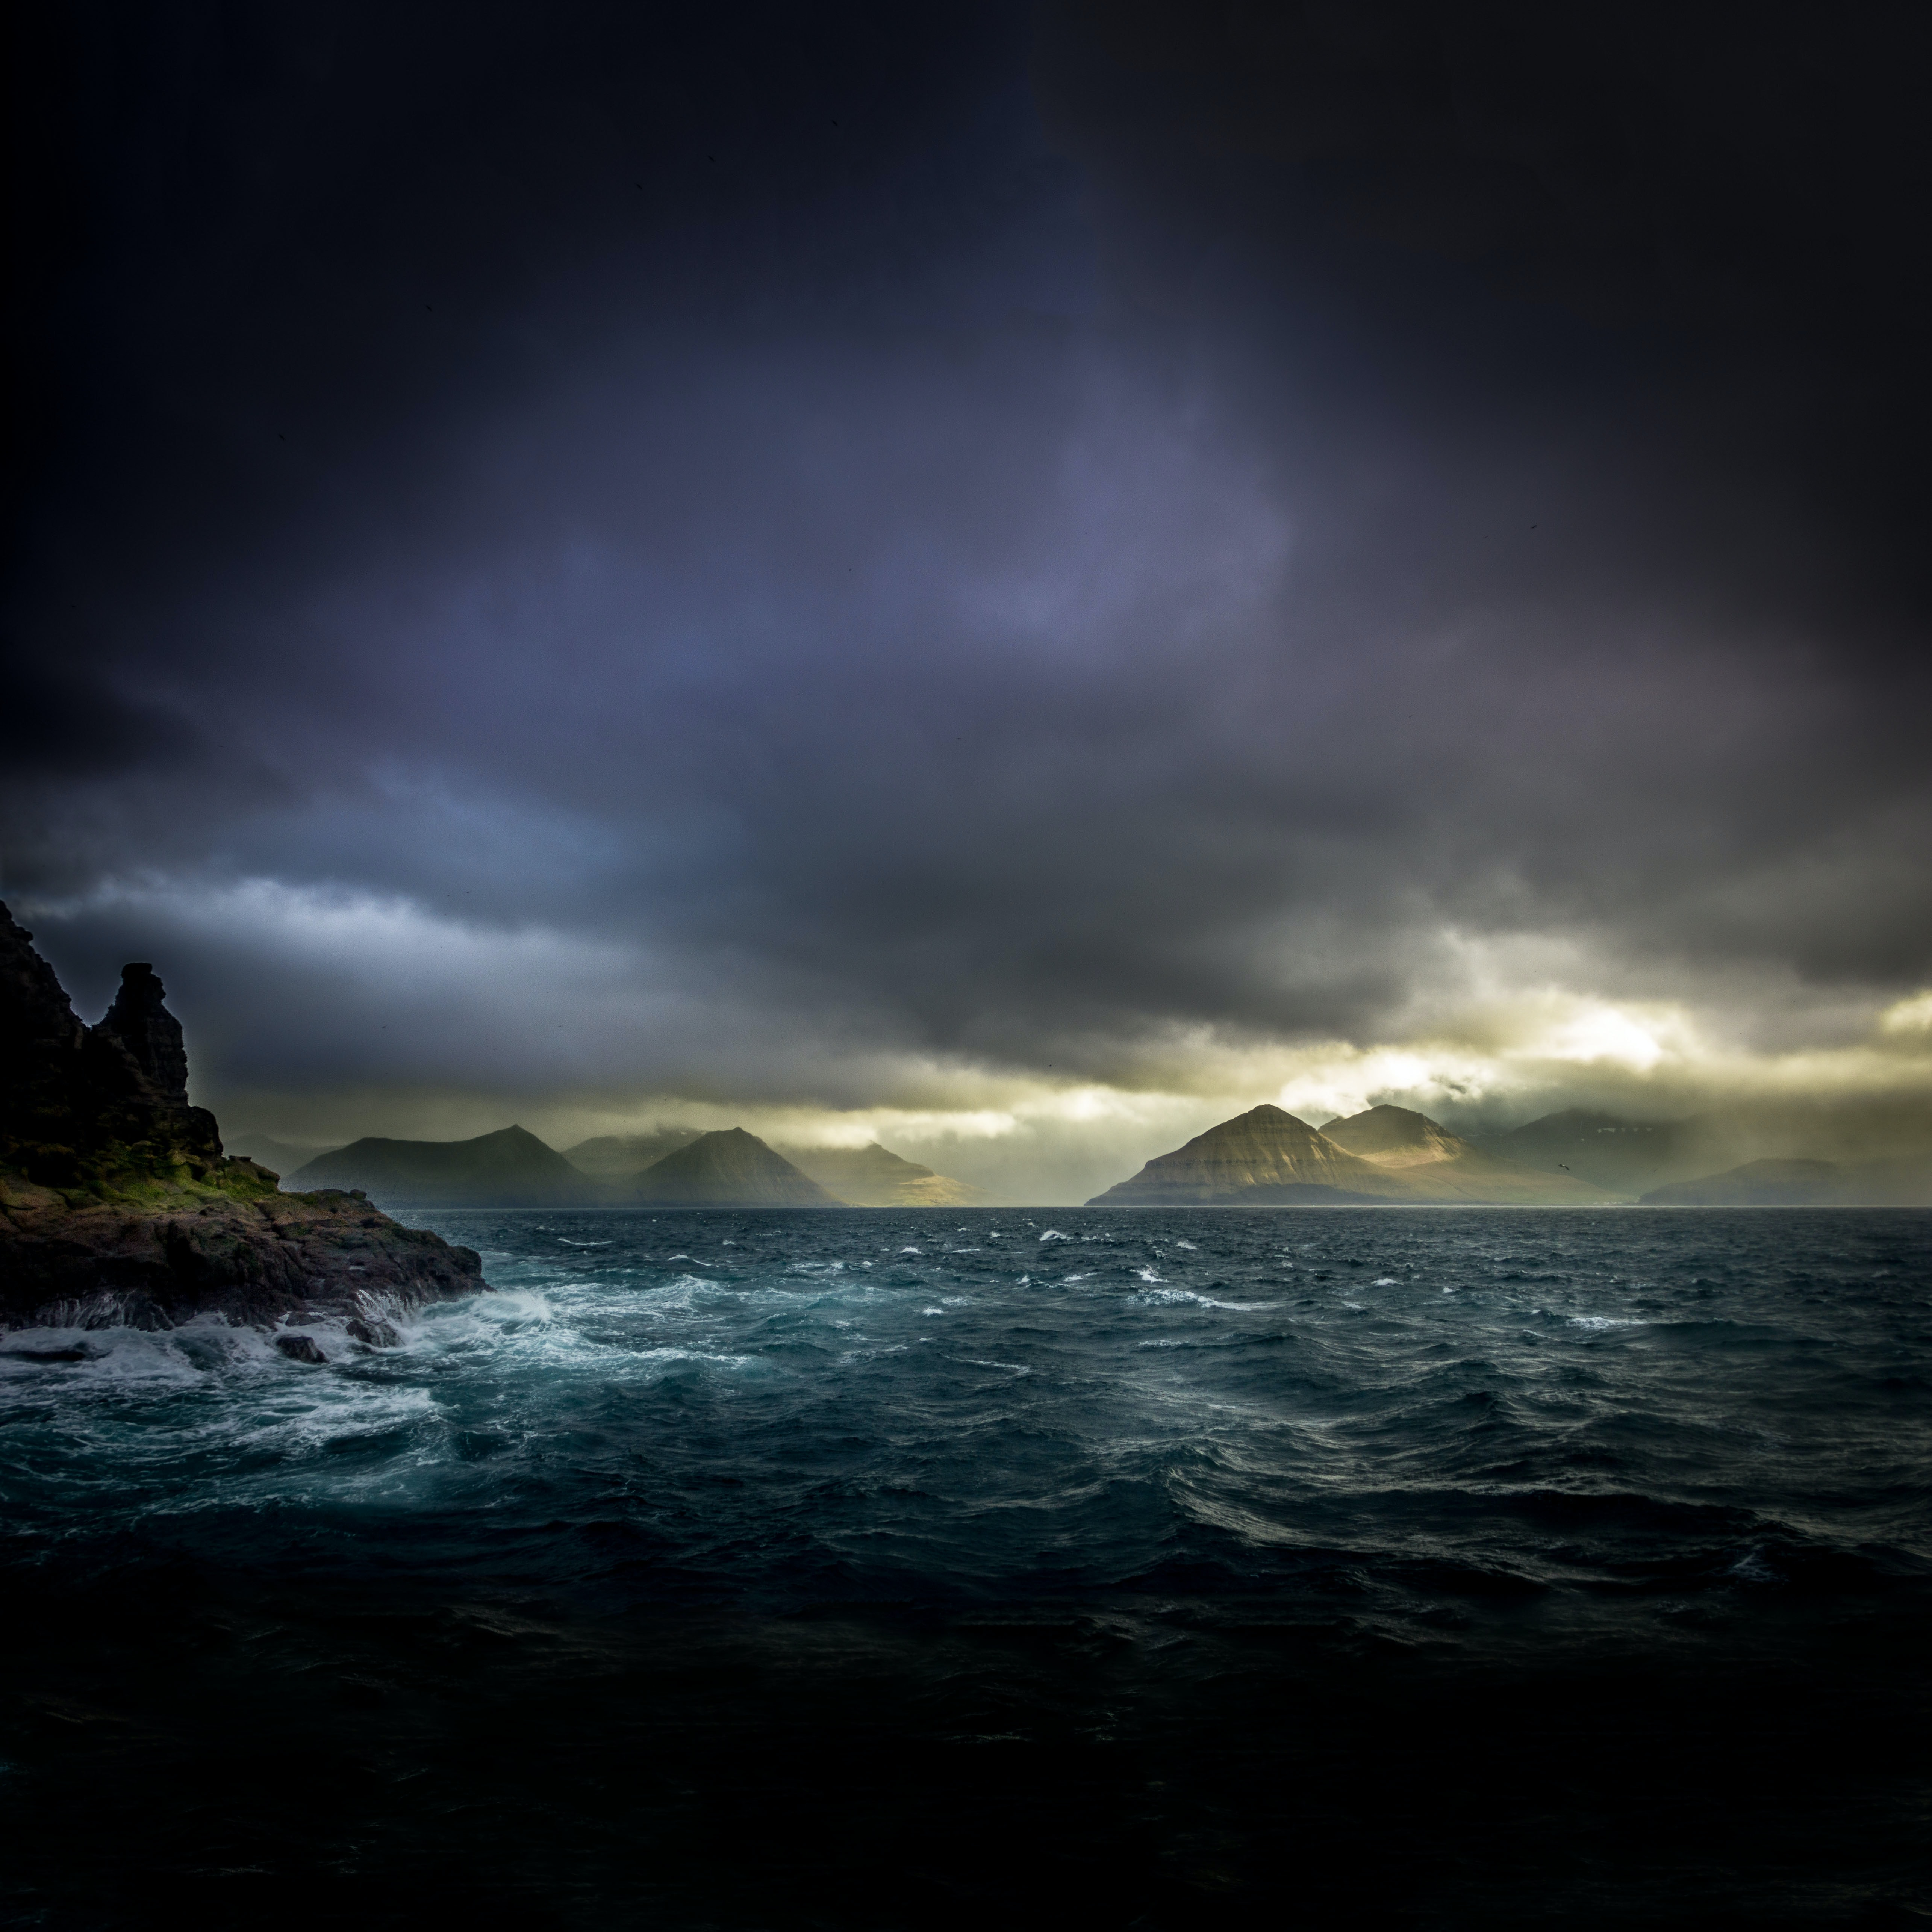 landscape photo of waters, mountains, and black clouds